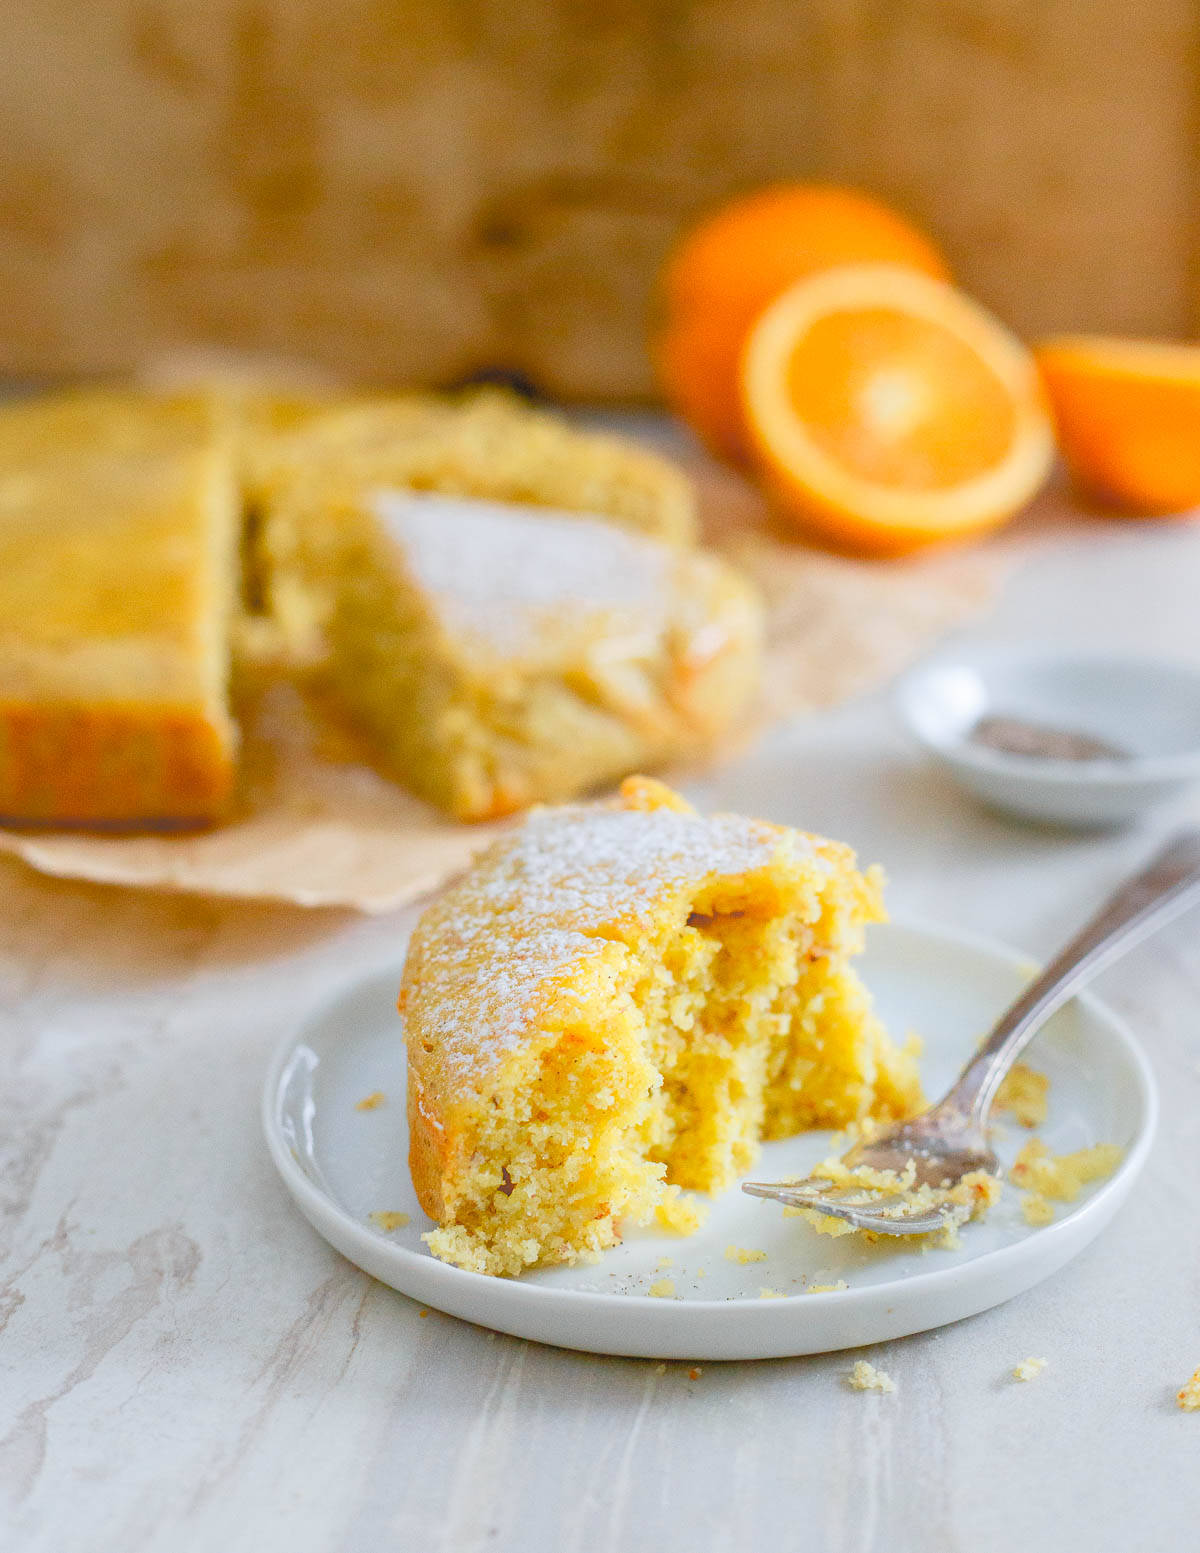 This orange cardamom cake with a sweet orange glaze is guaranteed to be enjoyed by all.